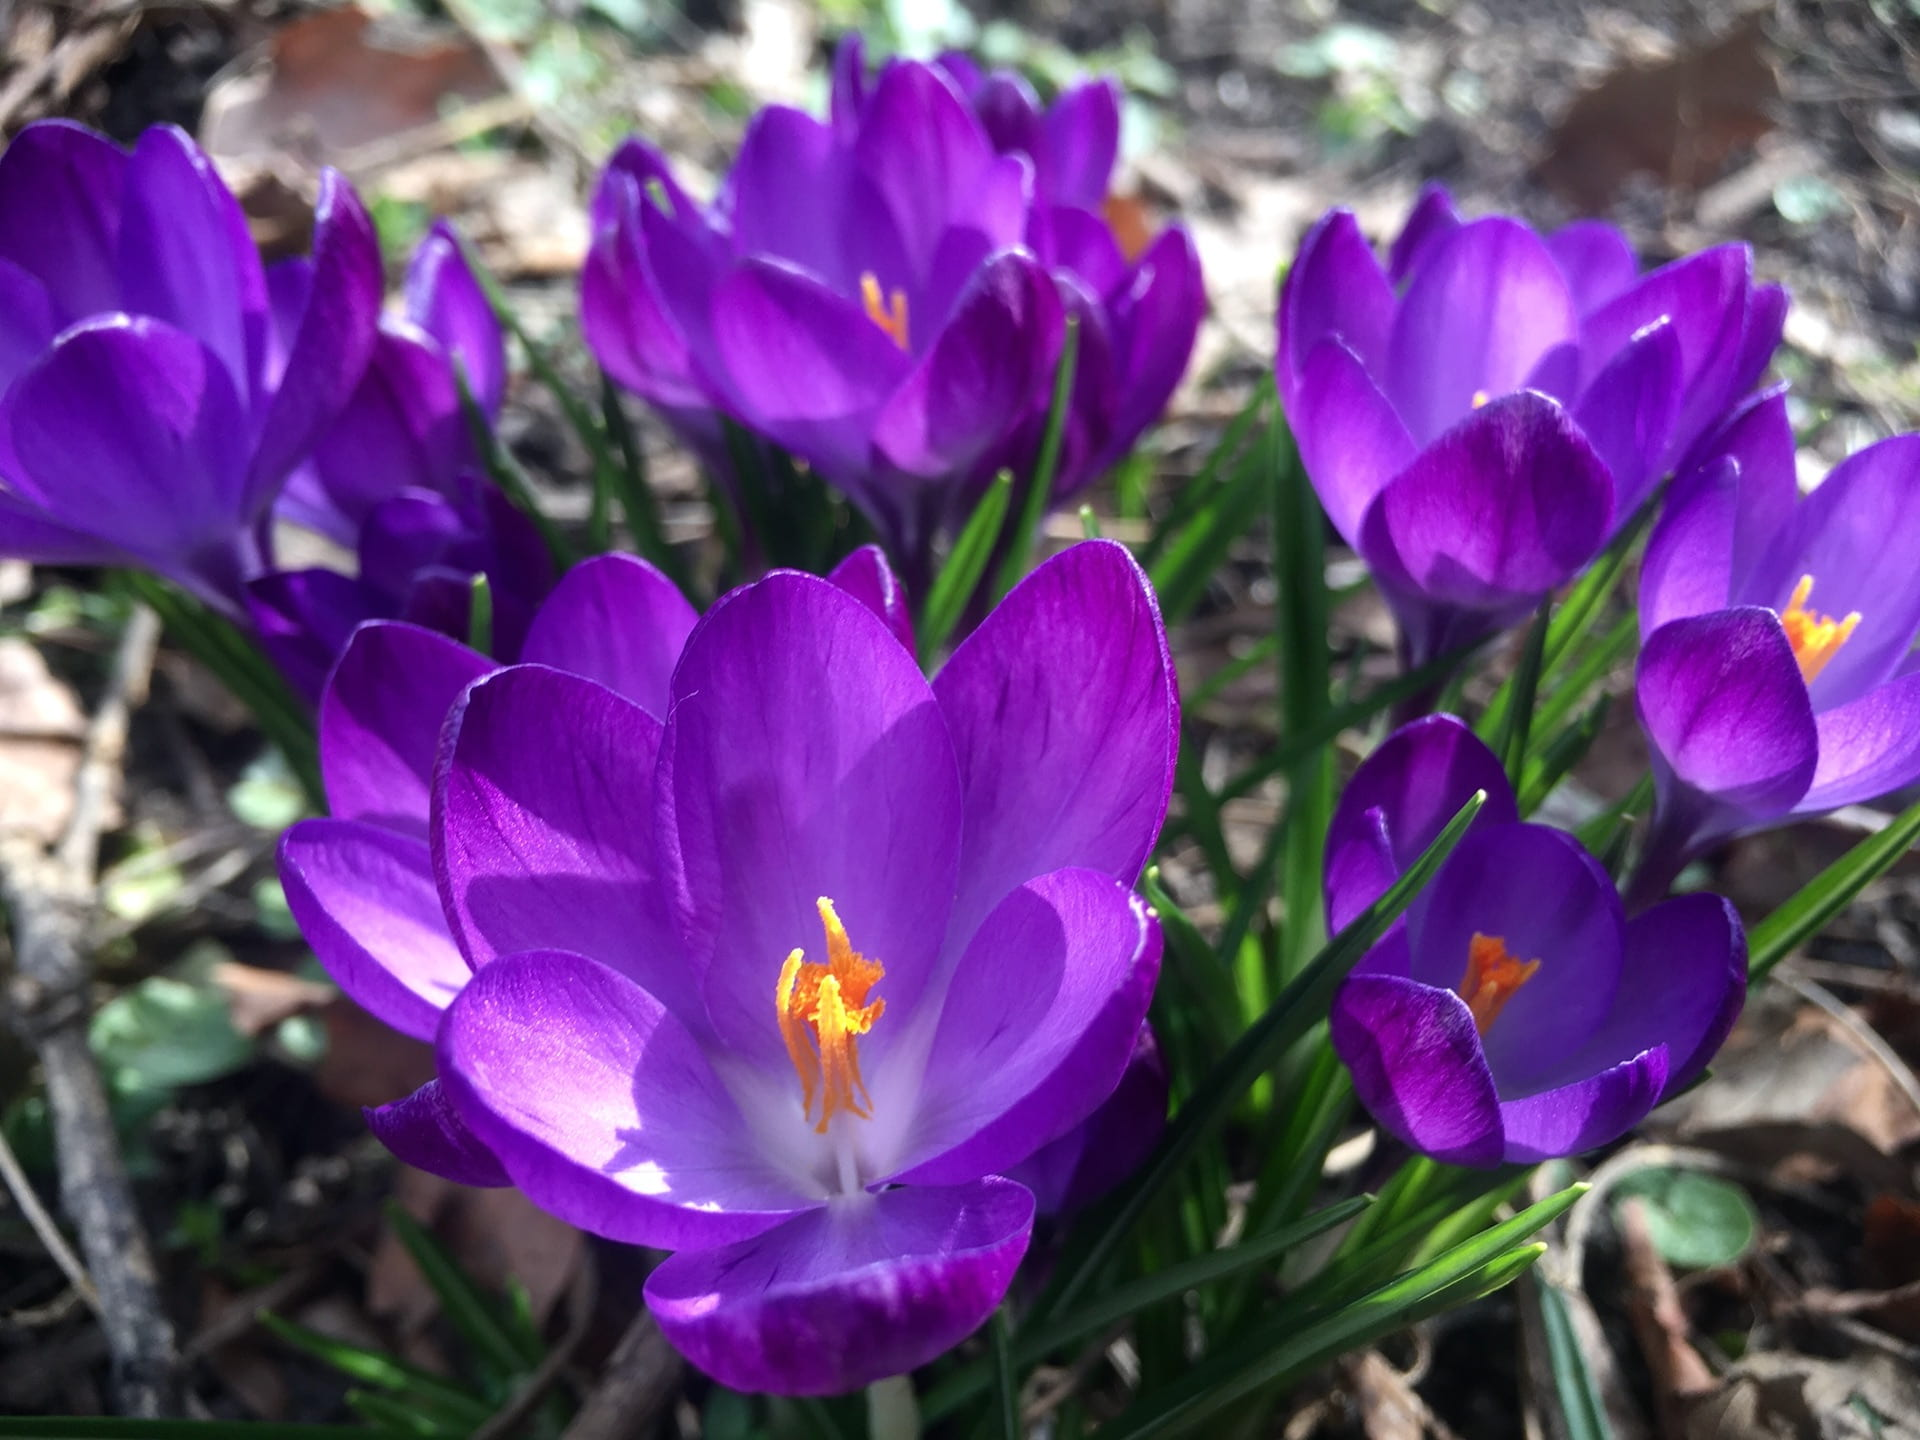 While they are small, the bright purple flowers of Crocus 'Flower Record' make a statement.